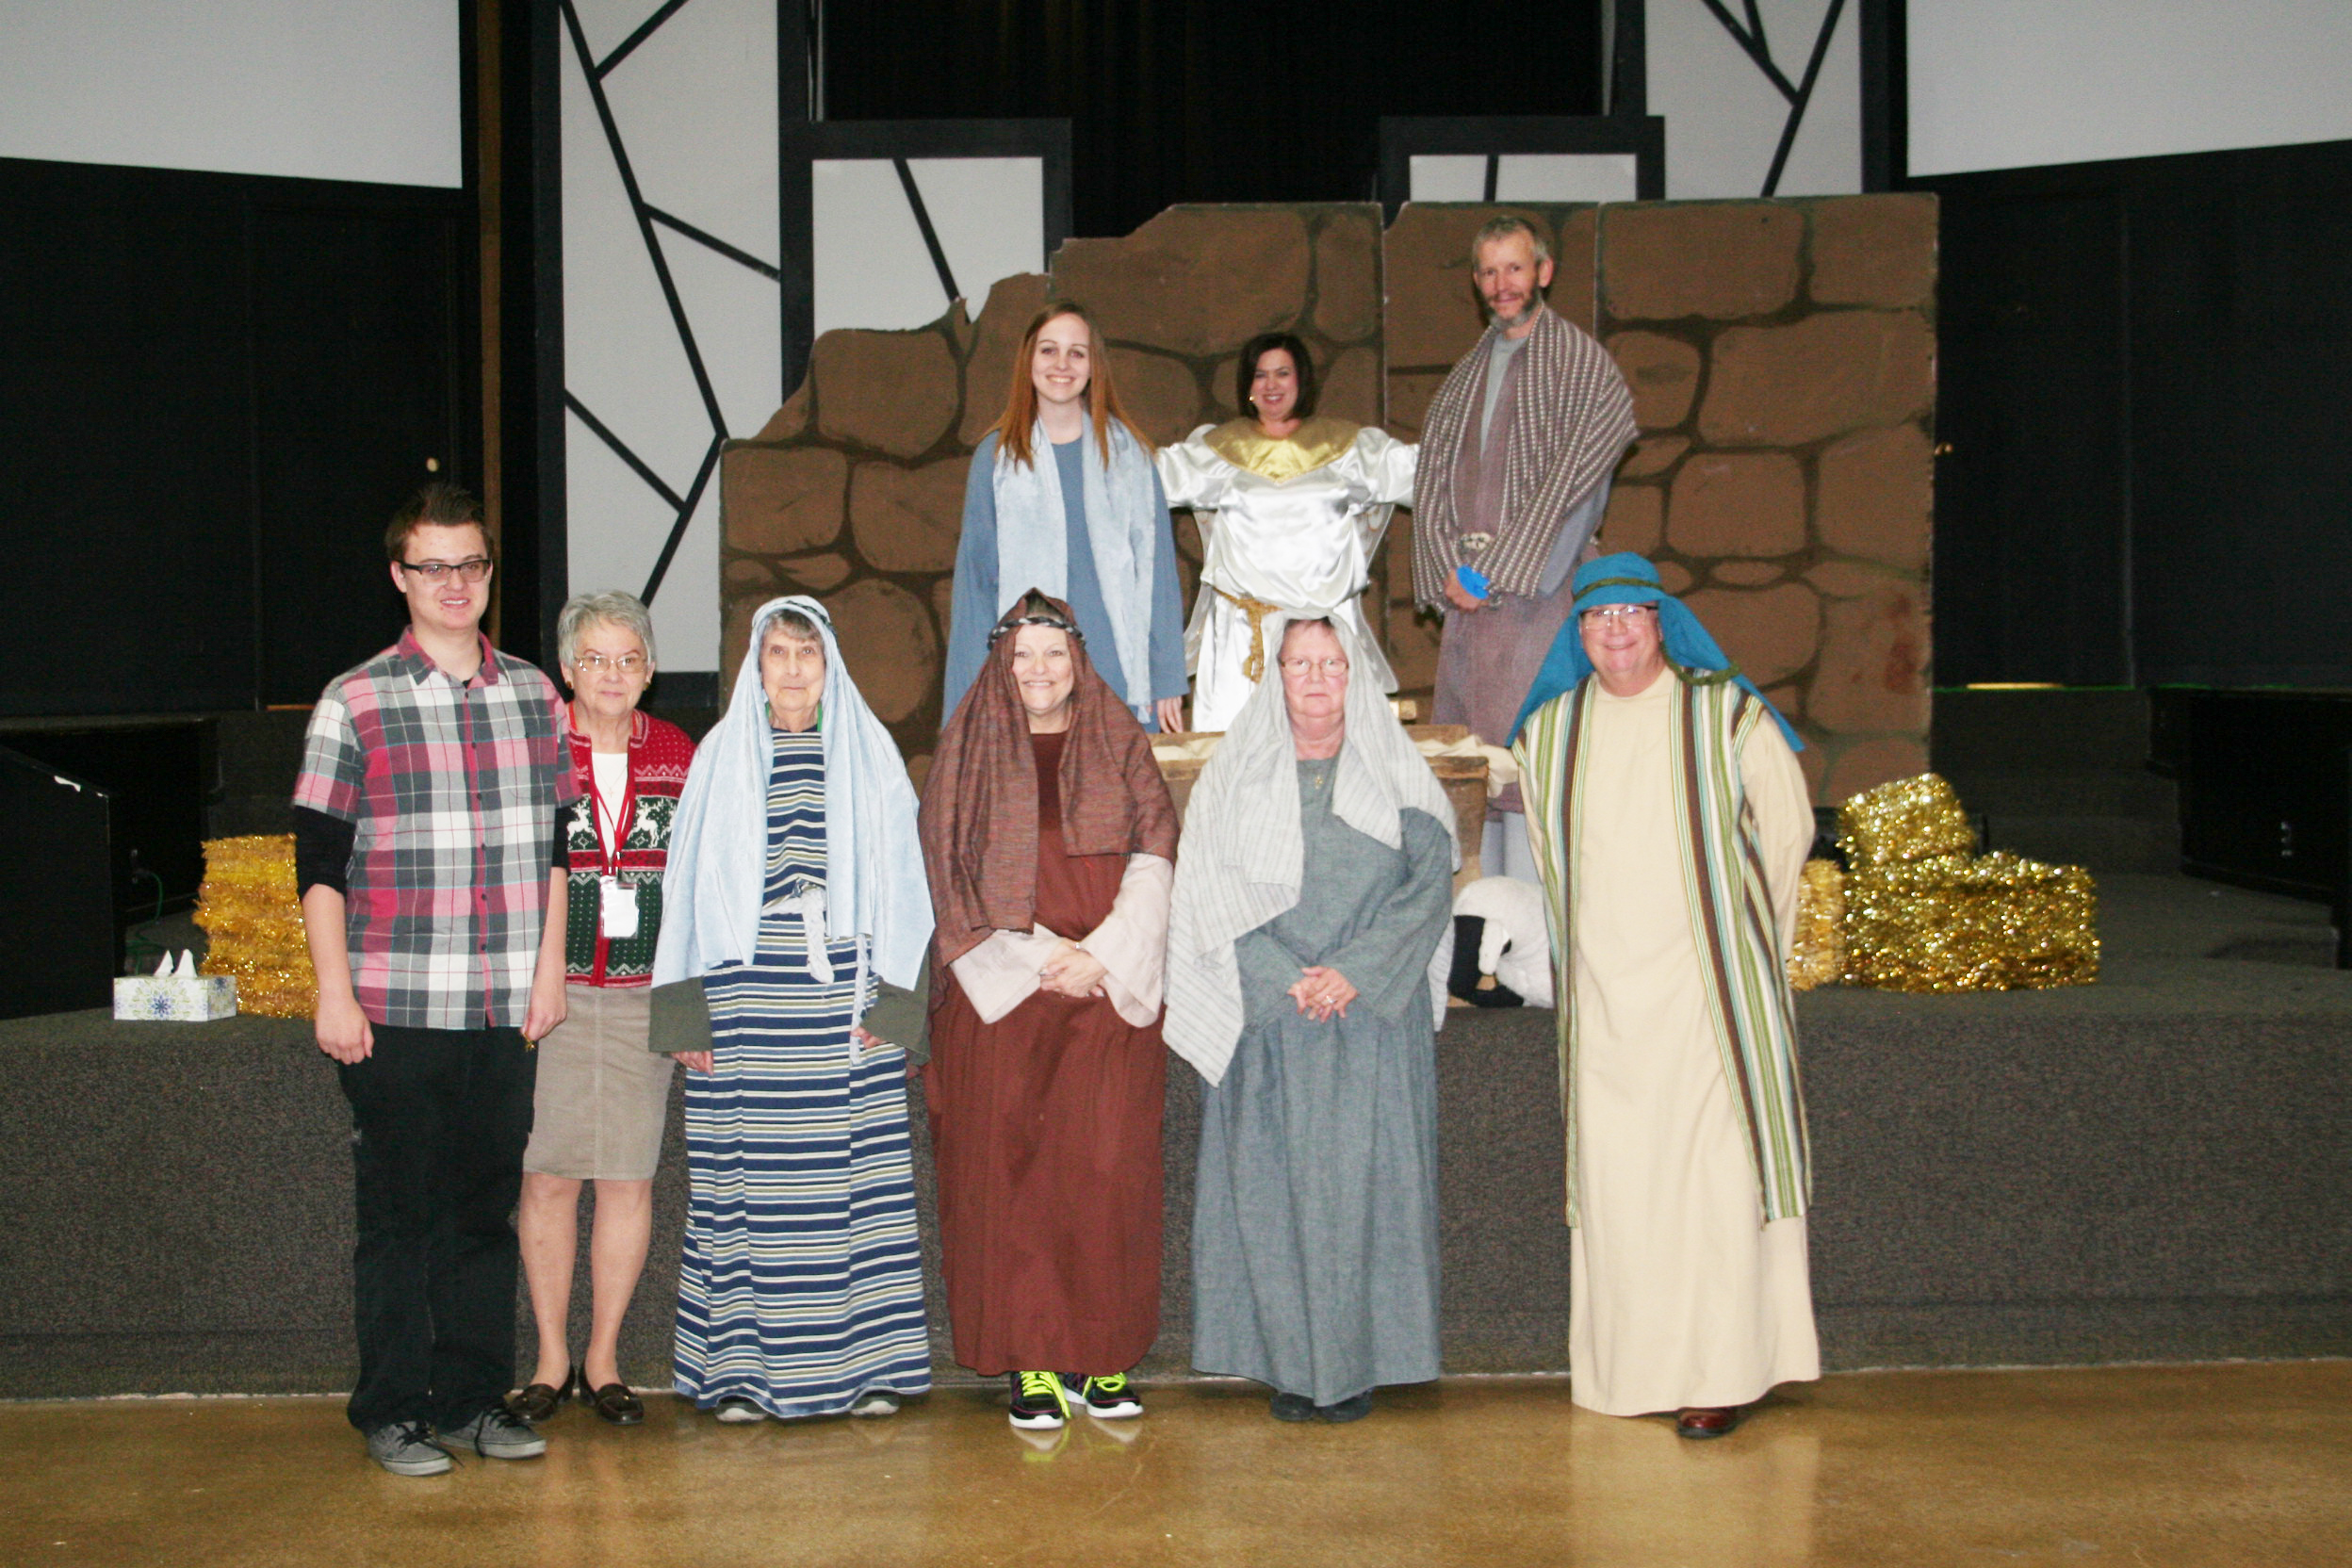 The cast and crew of Creation Corner's LaPosada.  Front row, from left: Nathan Luttrell, Sharon Panek, Kathy Kaemper, Ellie Nesman, Ginny Piper, Ron Gilreath. Back row, from left:  Danielle Ryan, Jamie Millard, and Jim Zagorski. (Submitted Photo)